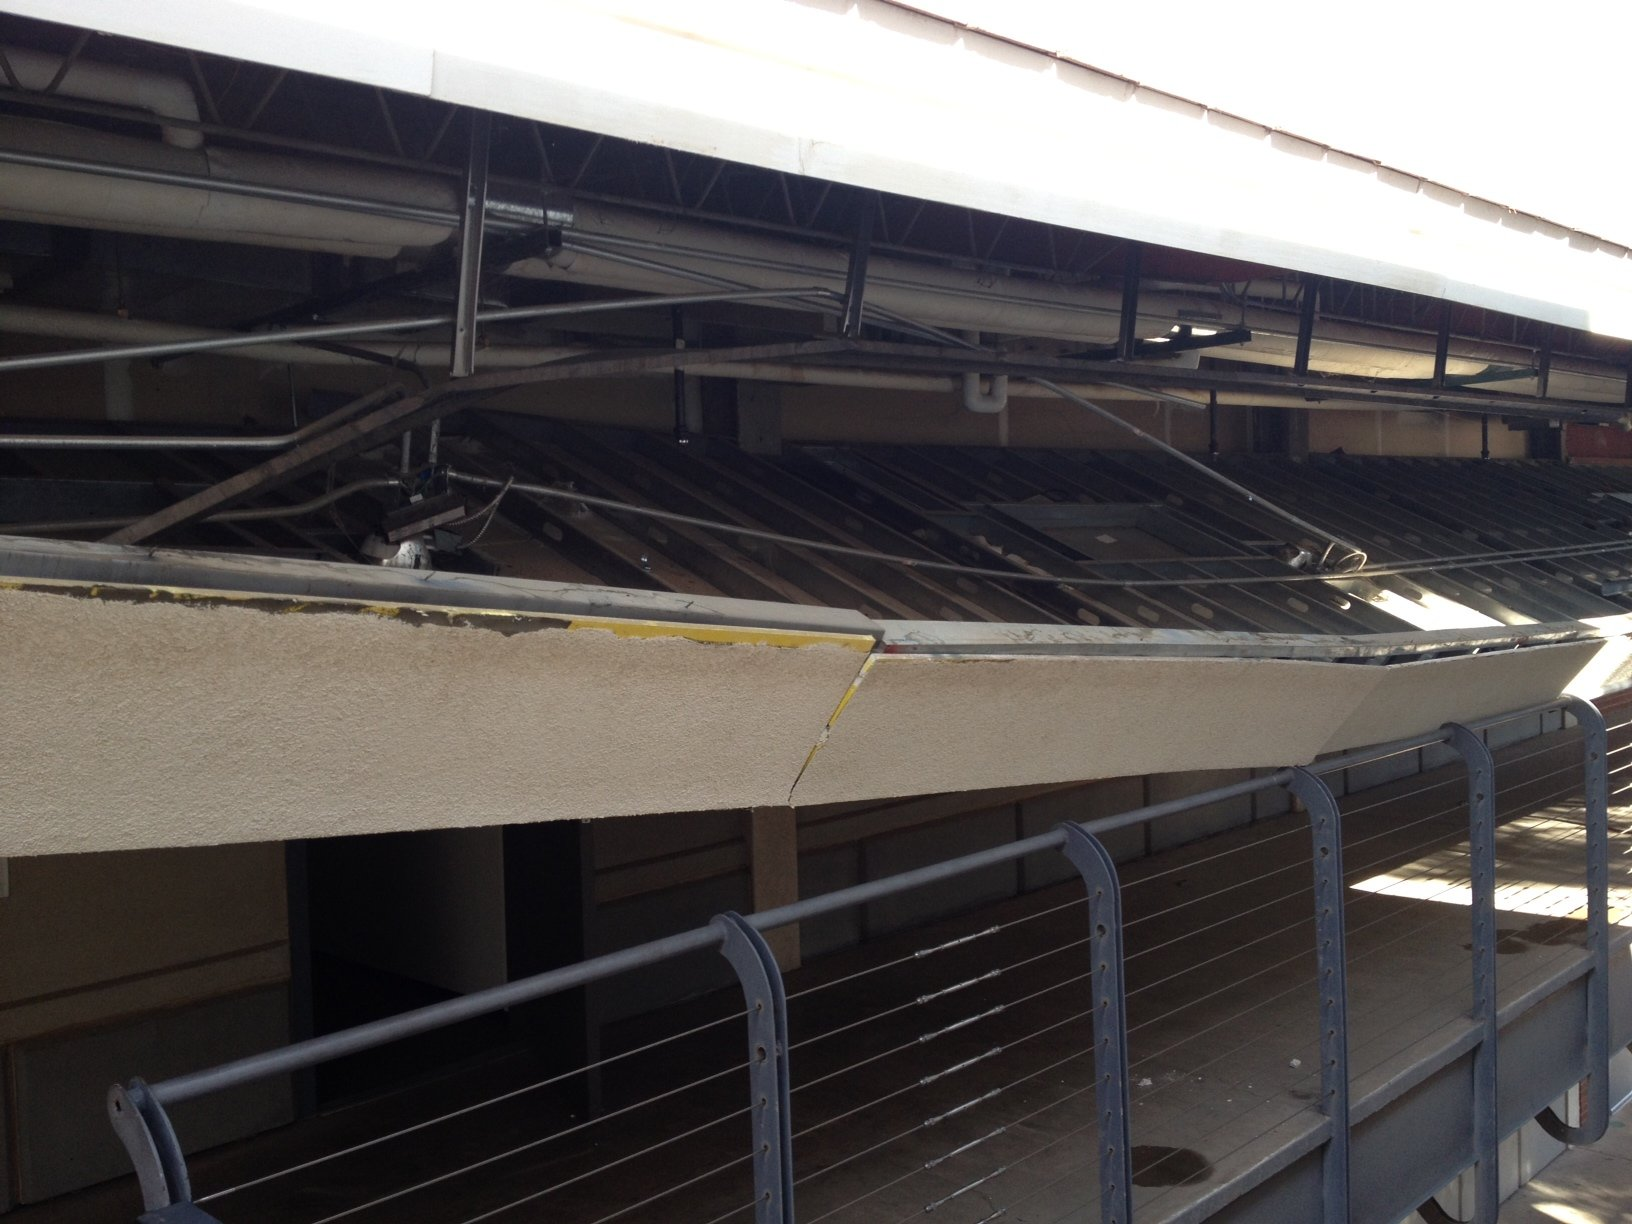  Phoenix College Ceiling Collapse - CBS 5